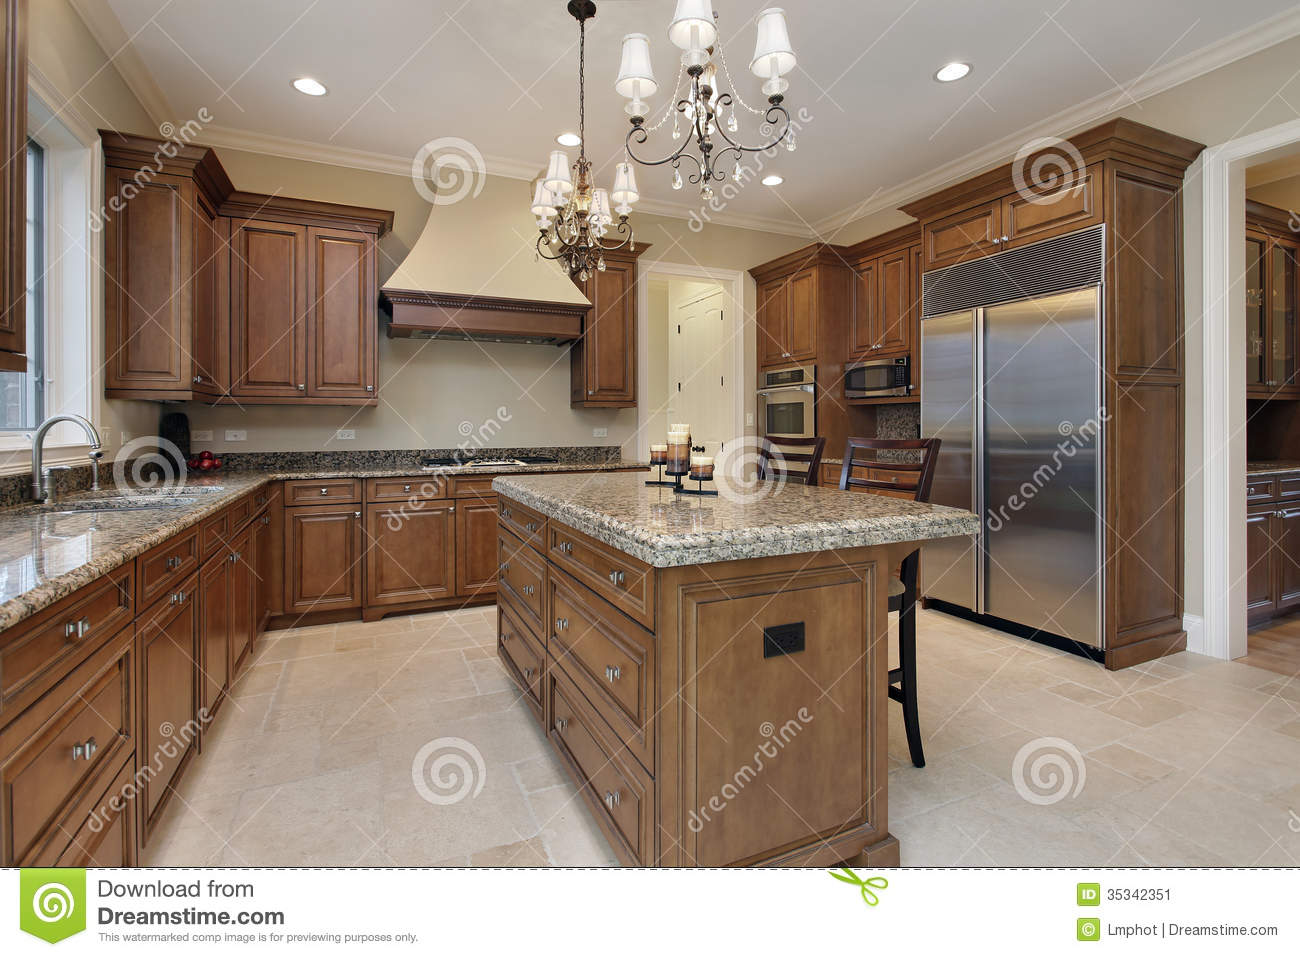 Granite Island Kitchen Kitchen With Granite Island Stock Image Image 35342351